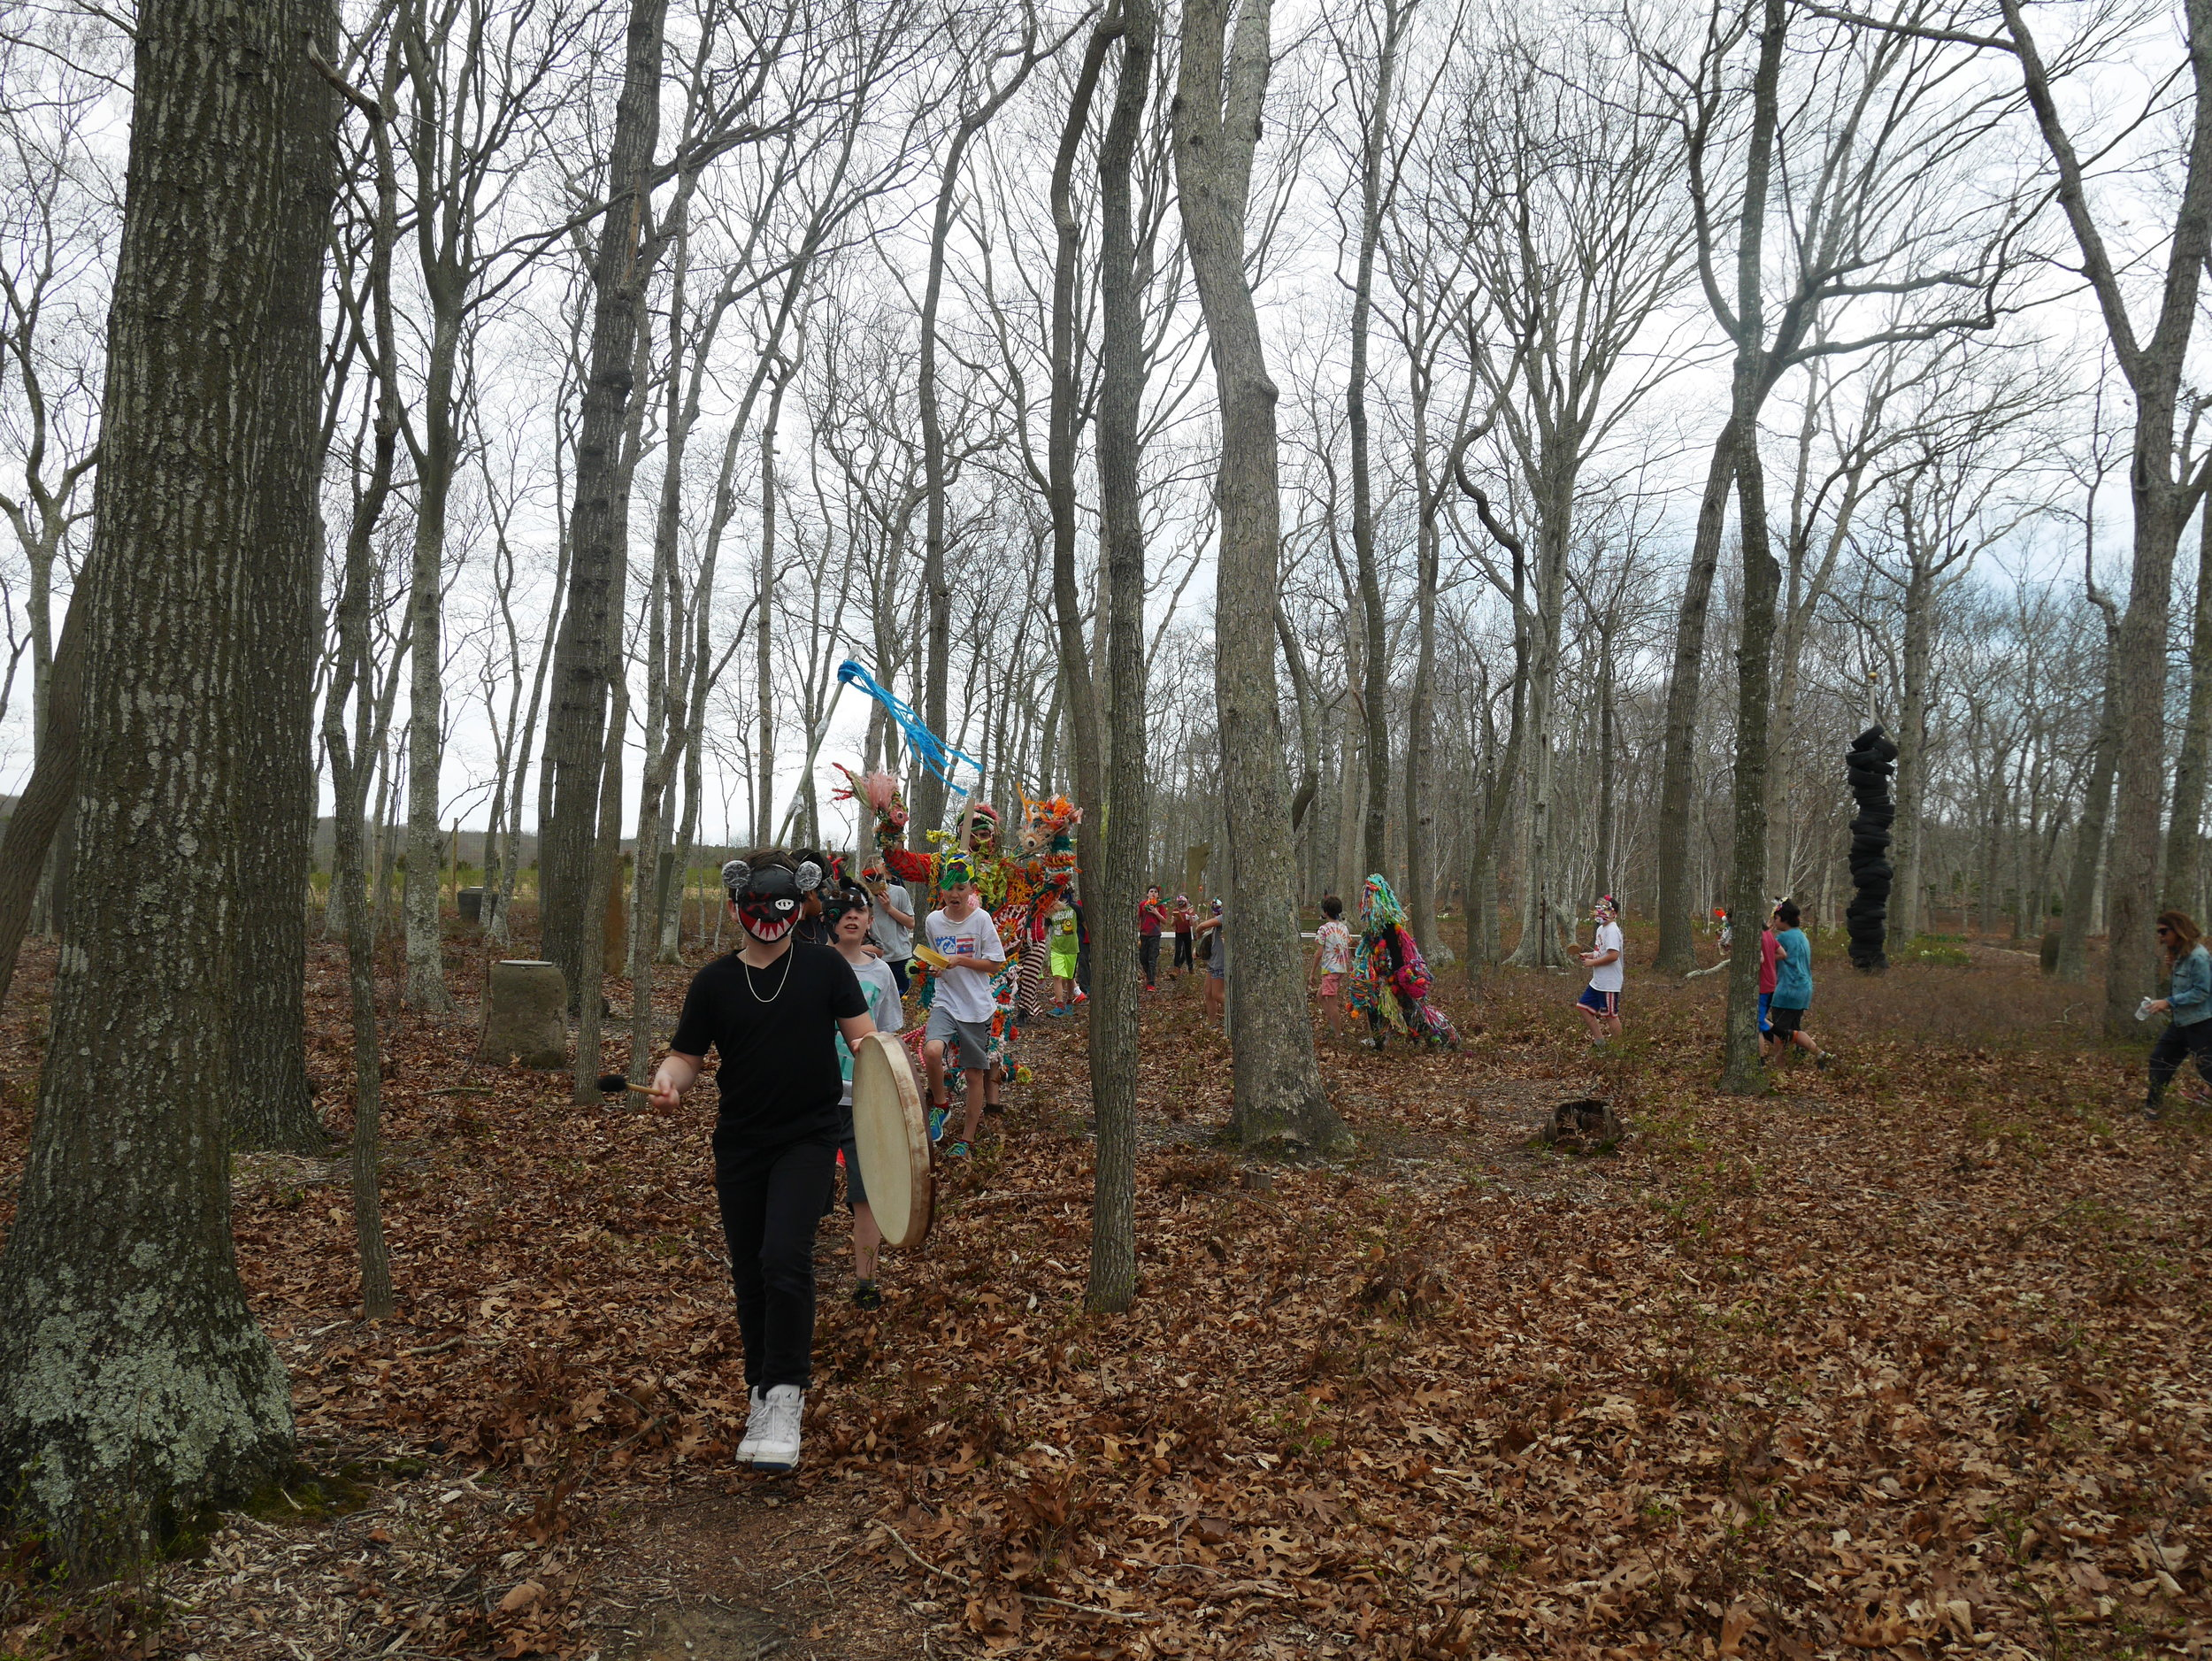 Marching in the beautiful woods...